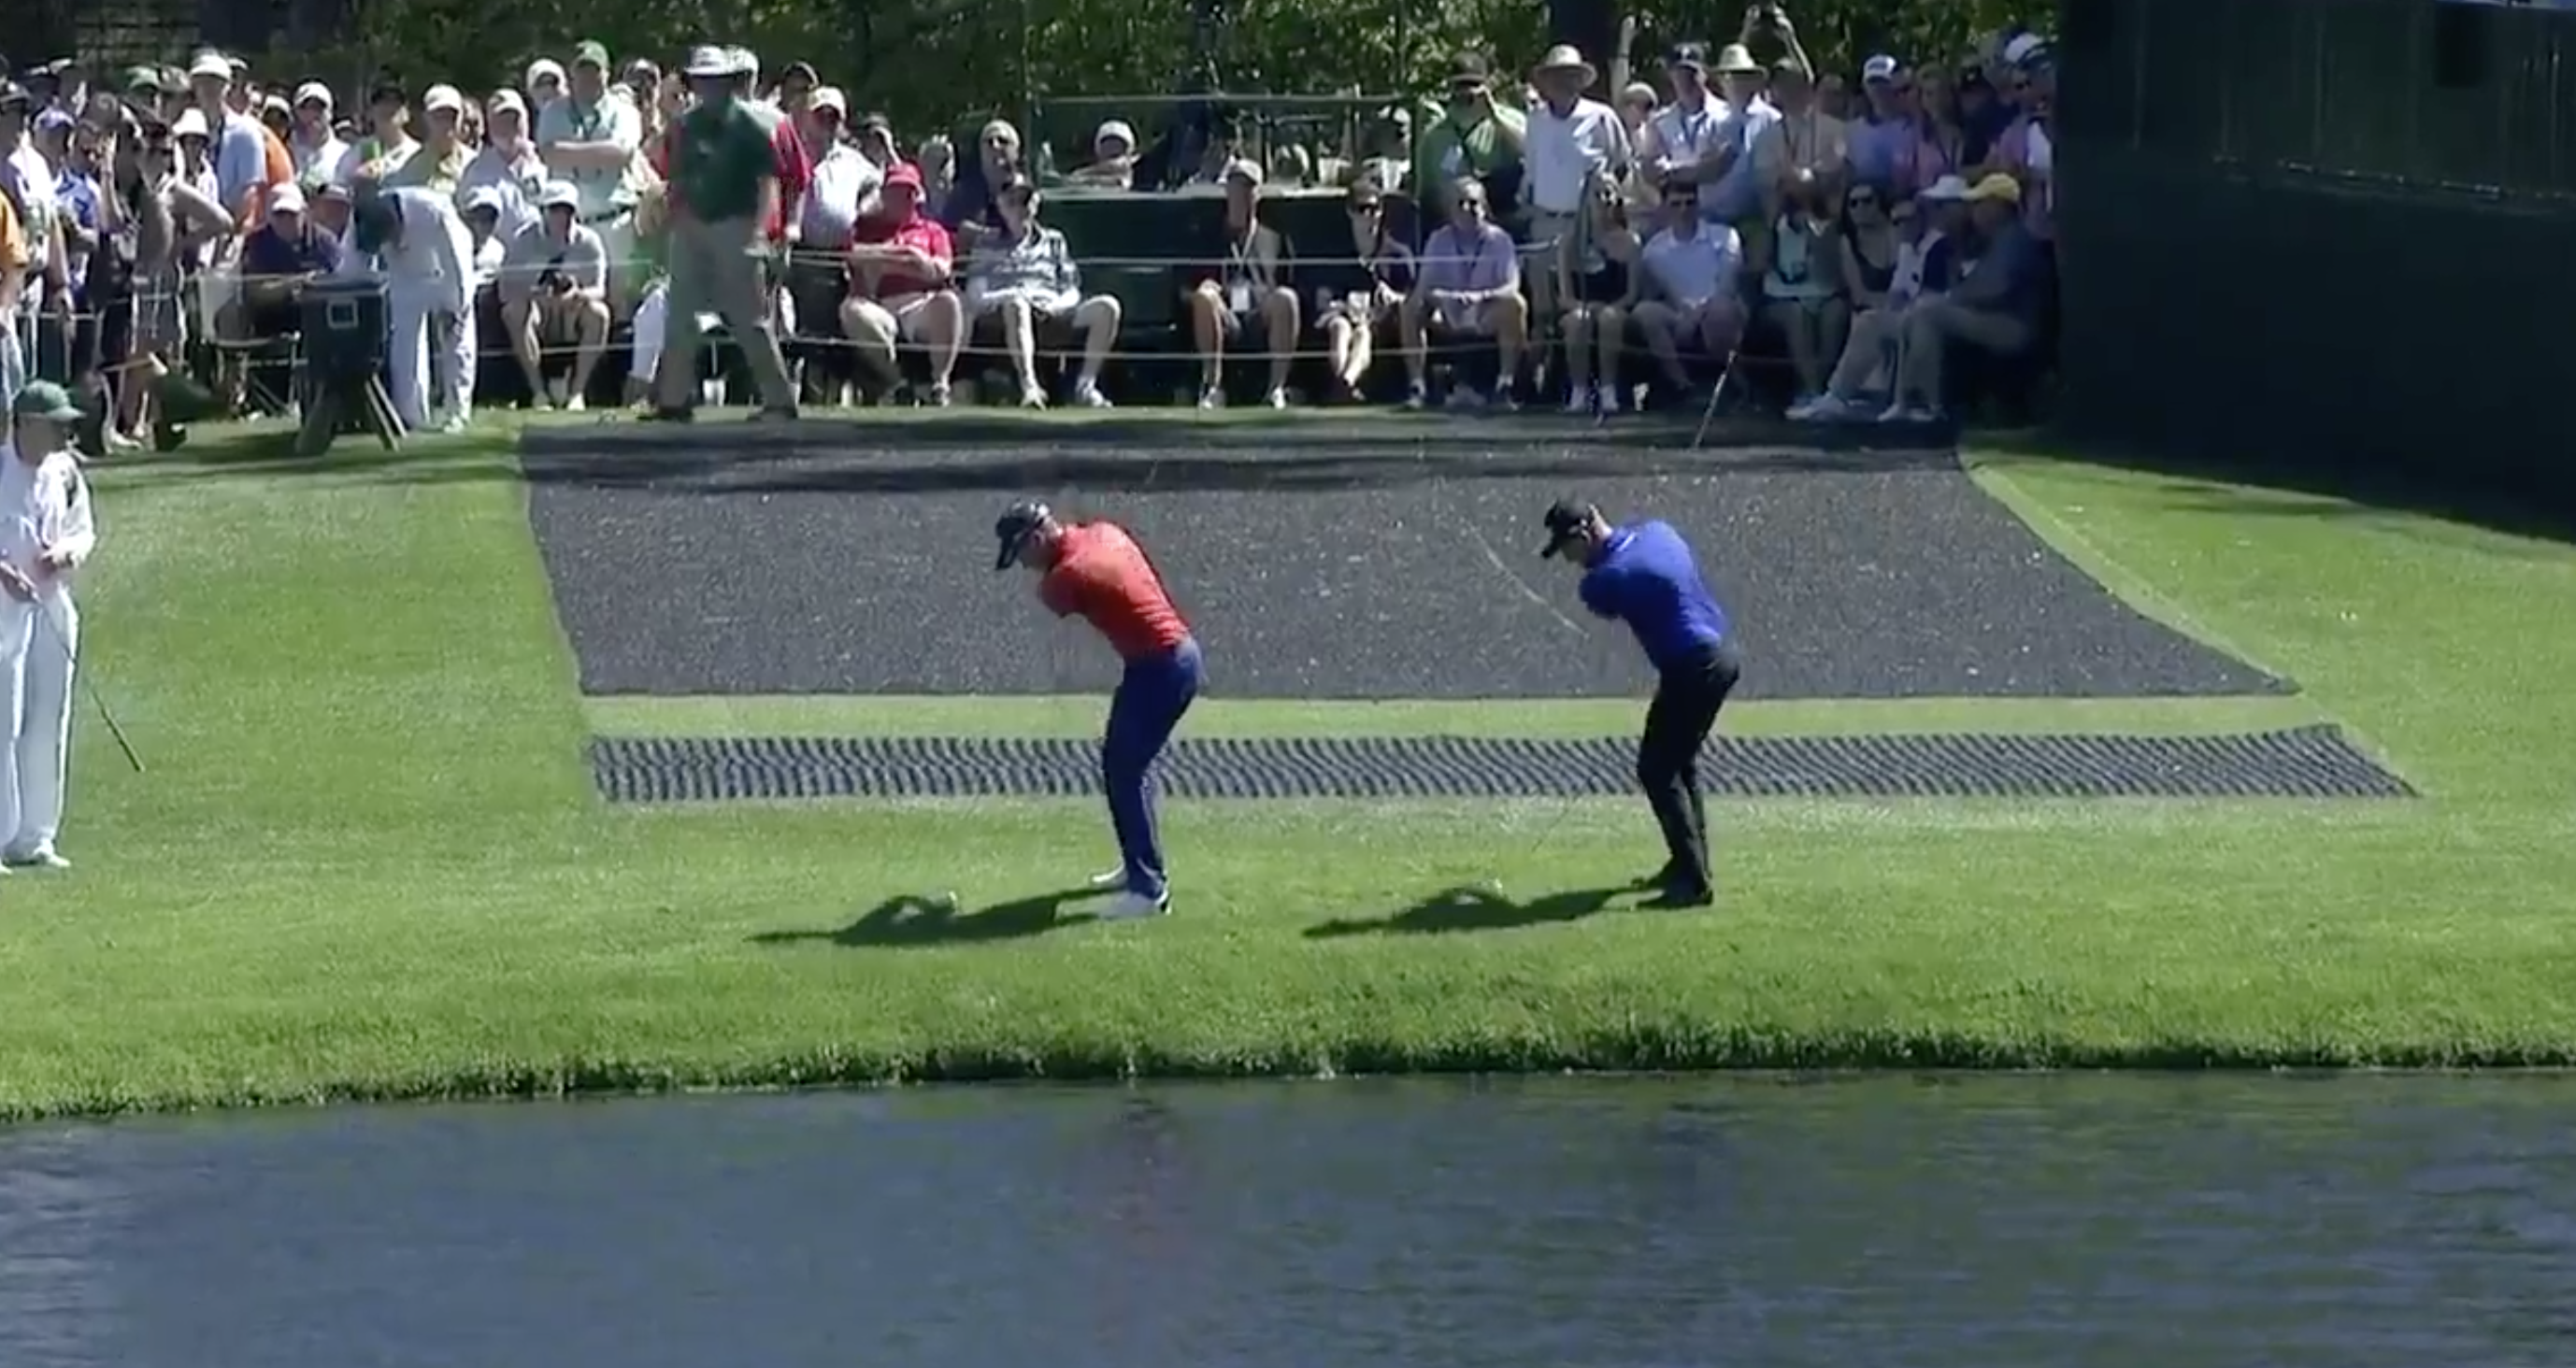 Danny Willett and Tyrell Hatton pulled off some synchronized skip-shots at the 16th Tuesday.